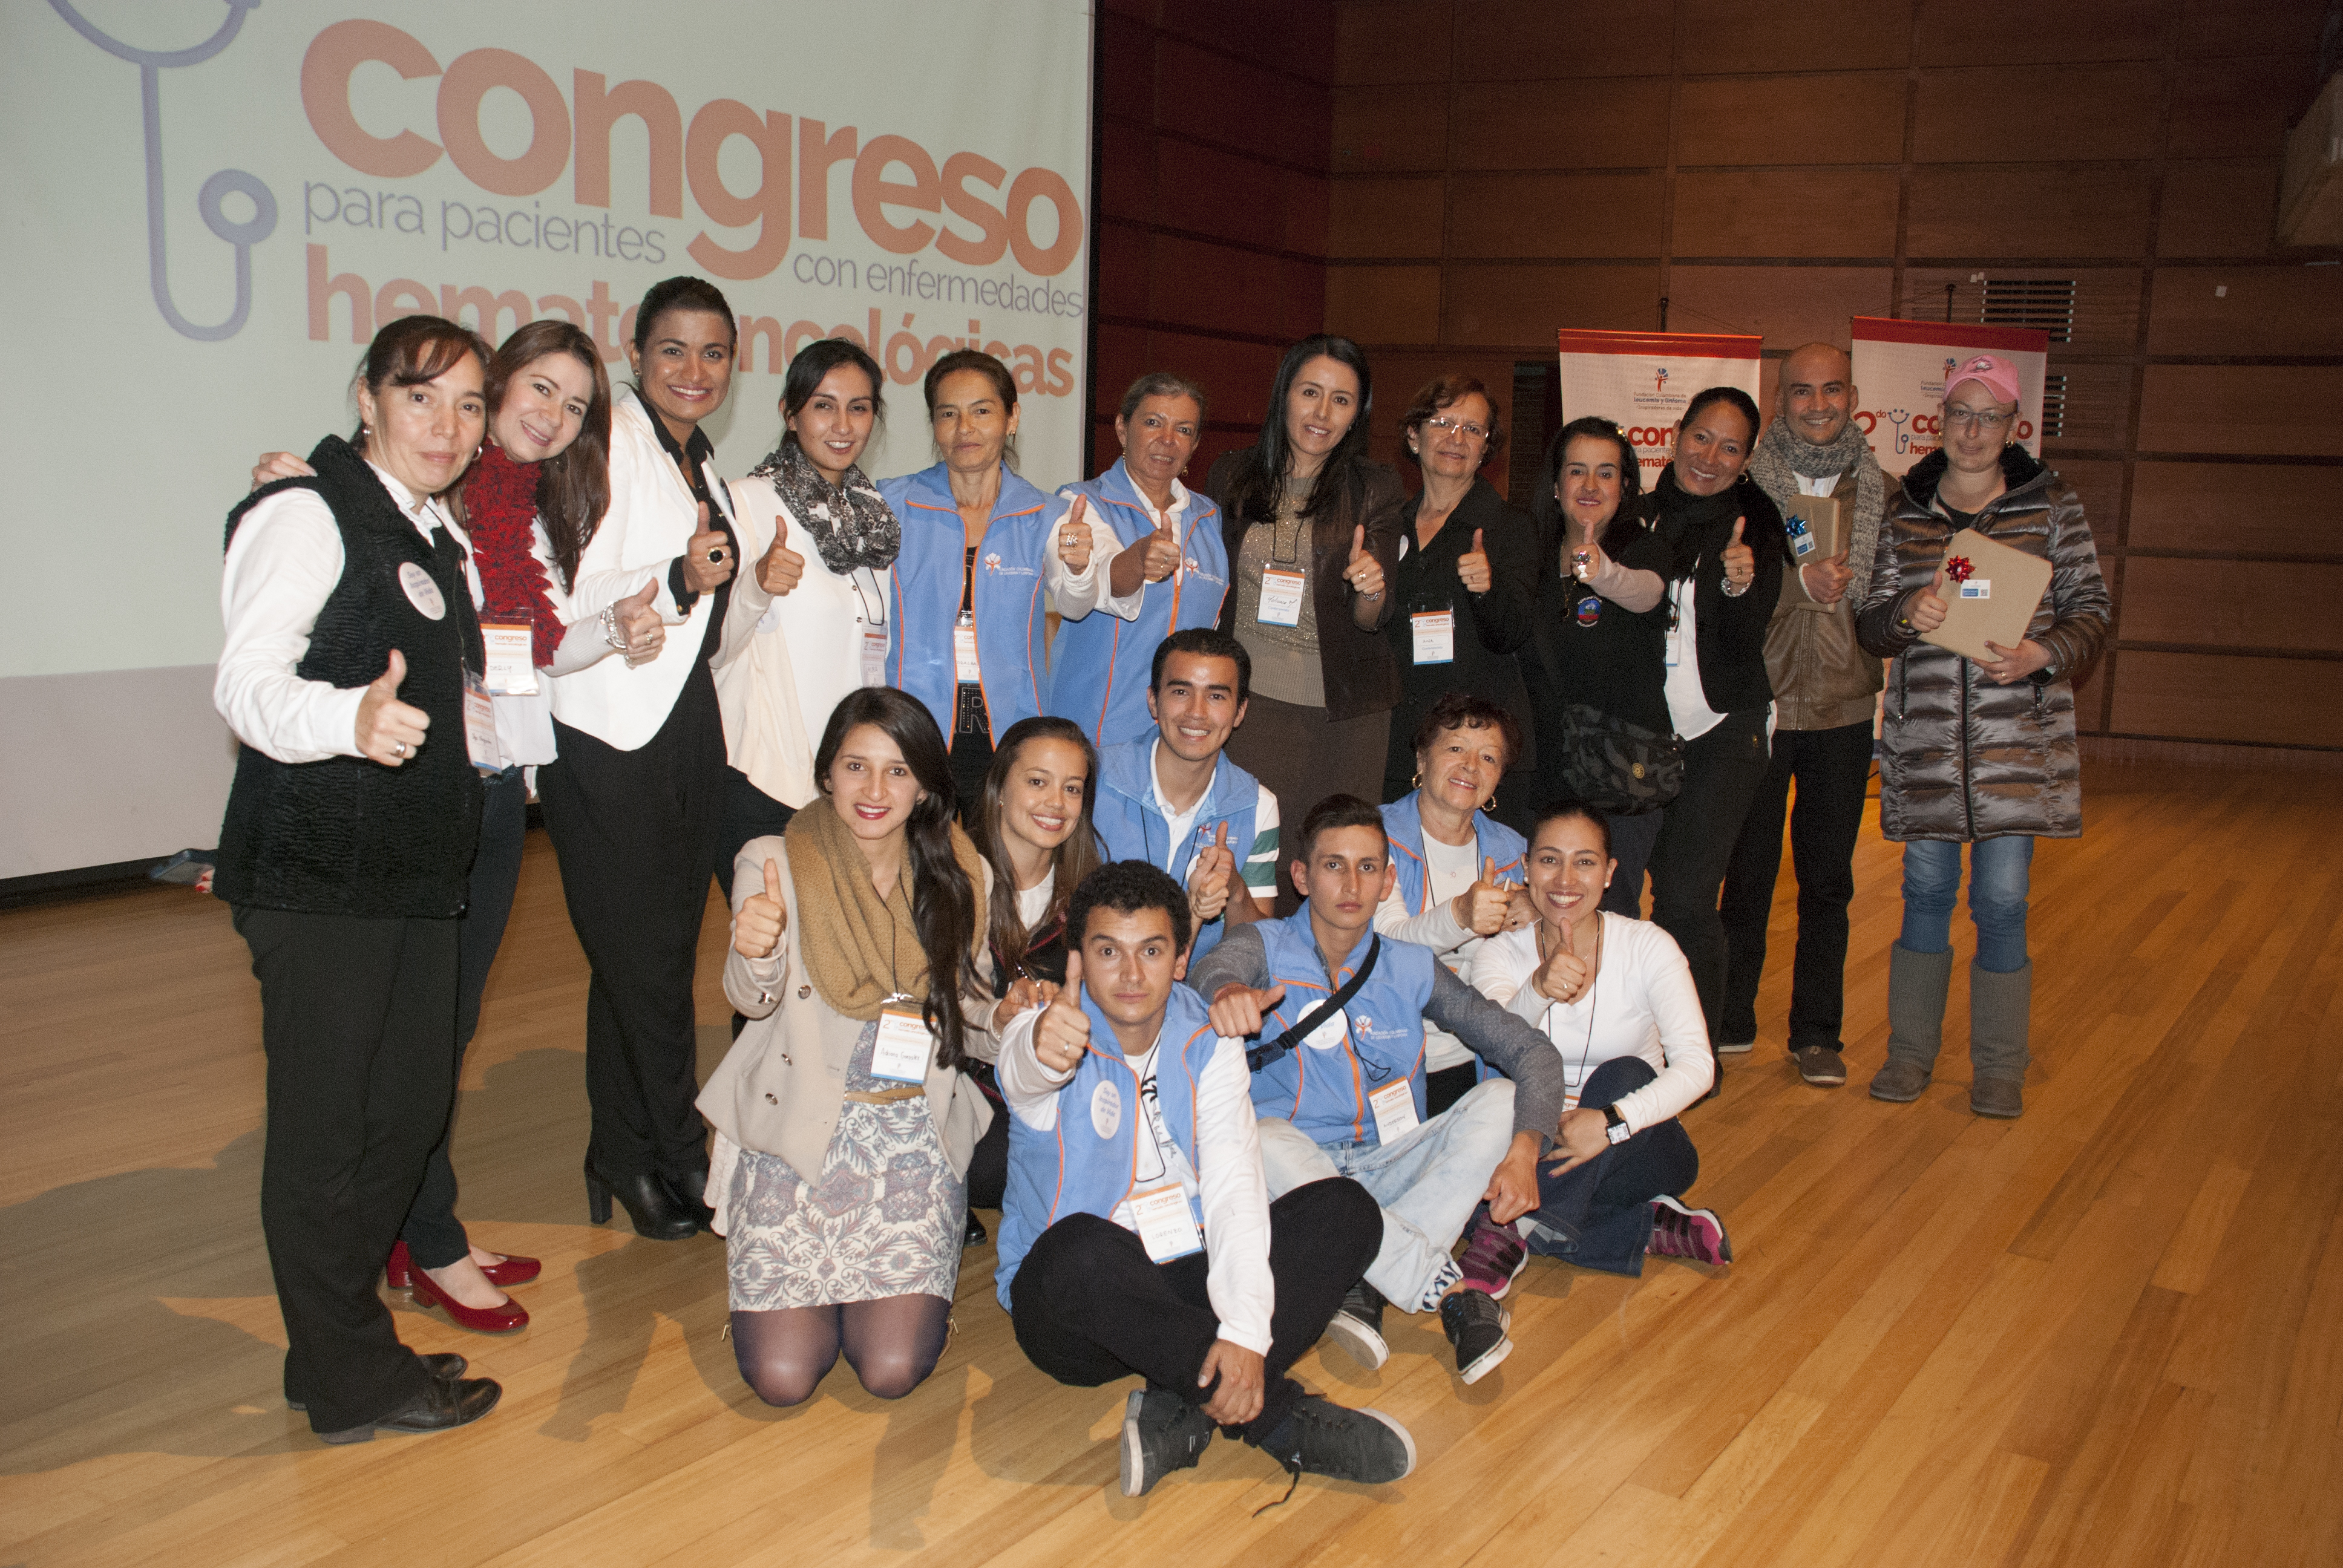 2doCongresoPacientes2016-85